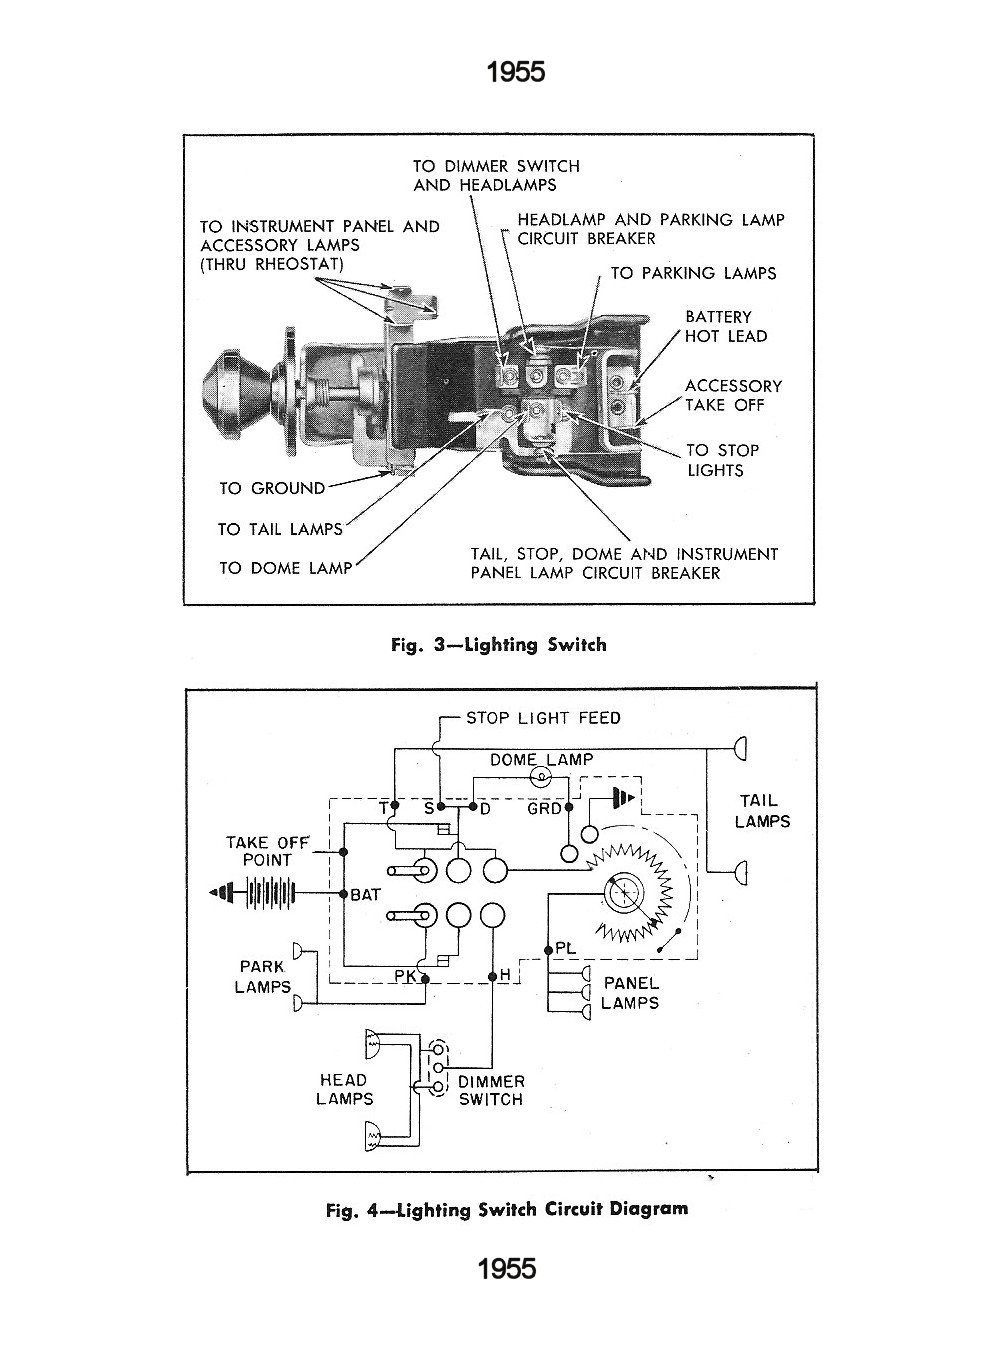 55csm1204a chevy wiring diagrams 4 headlight wiring diagram at bakdesigns.co